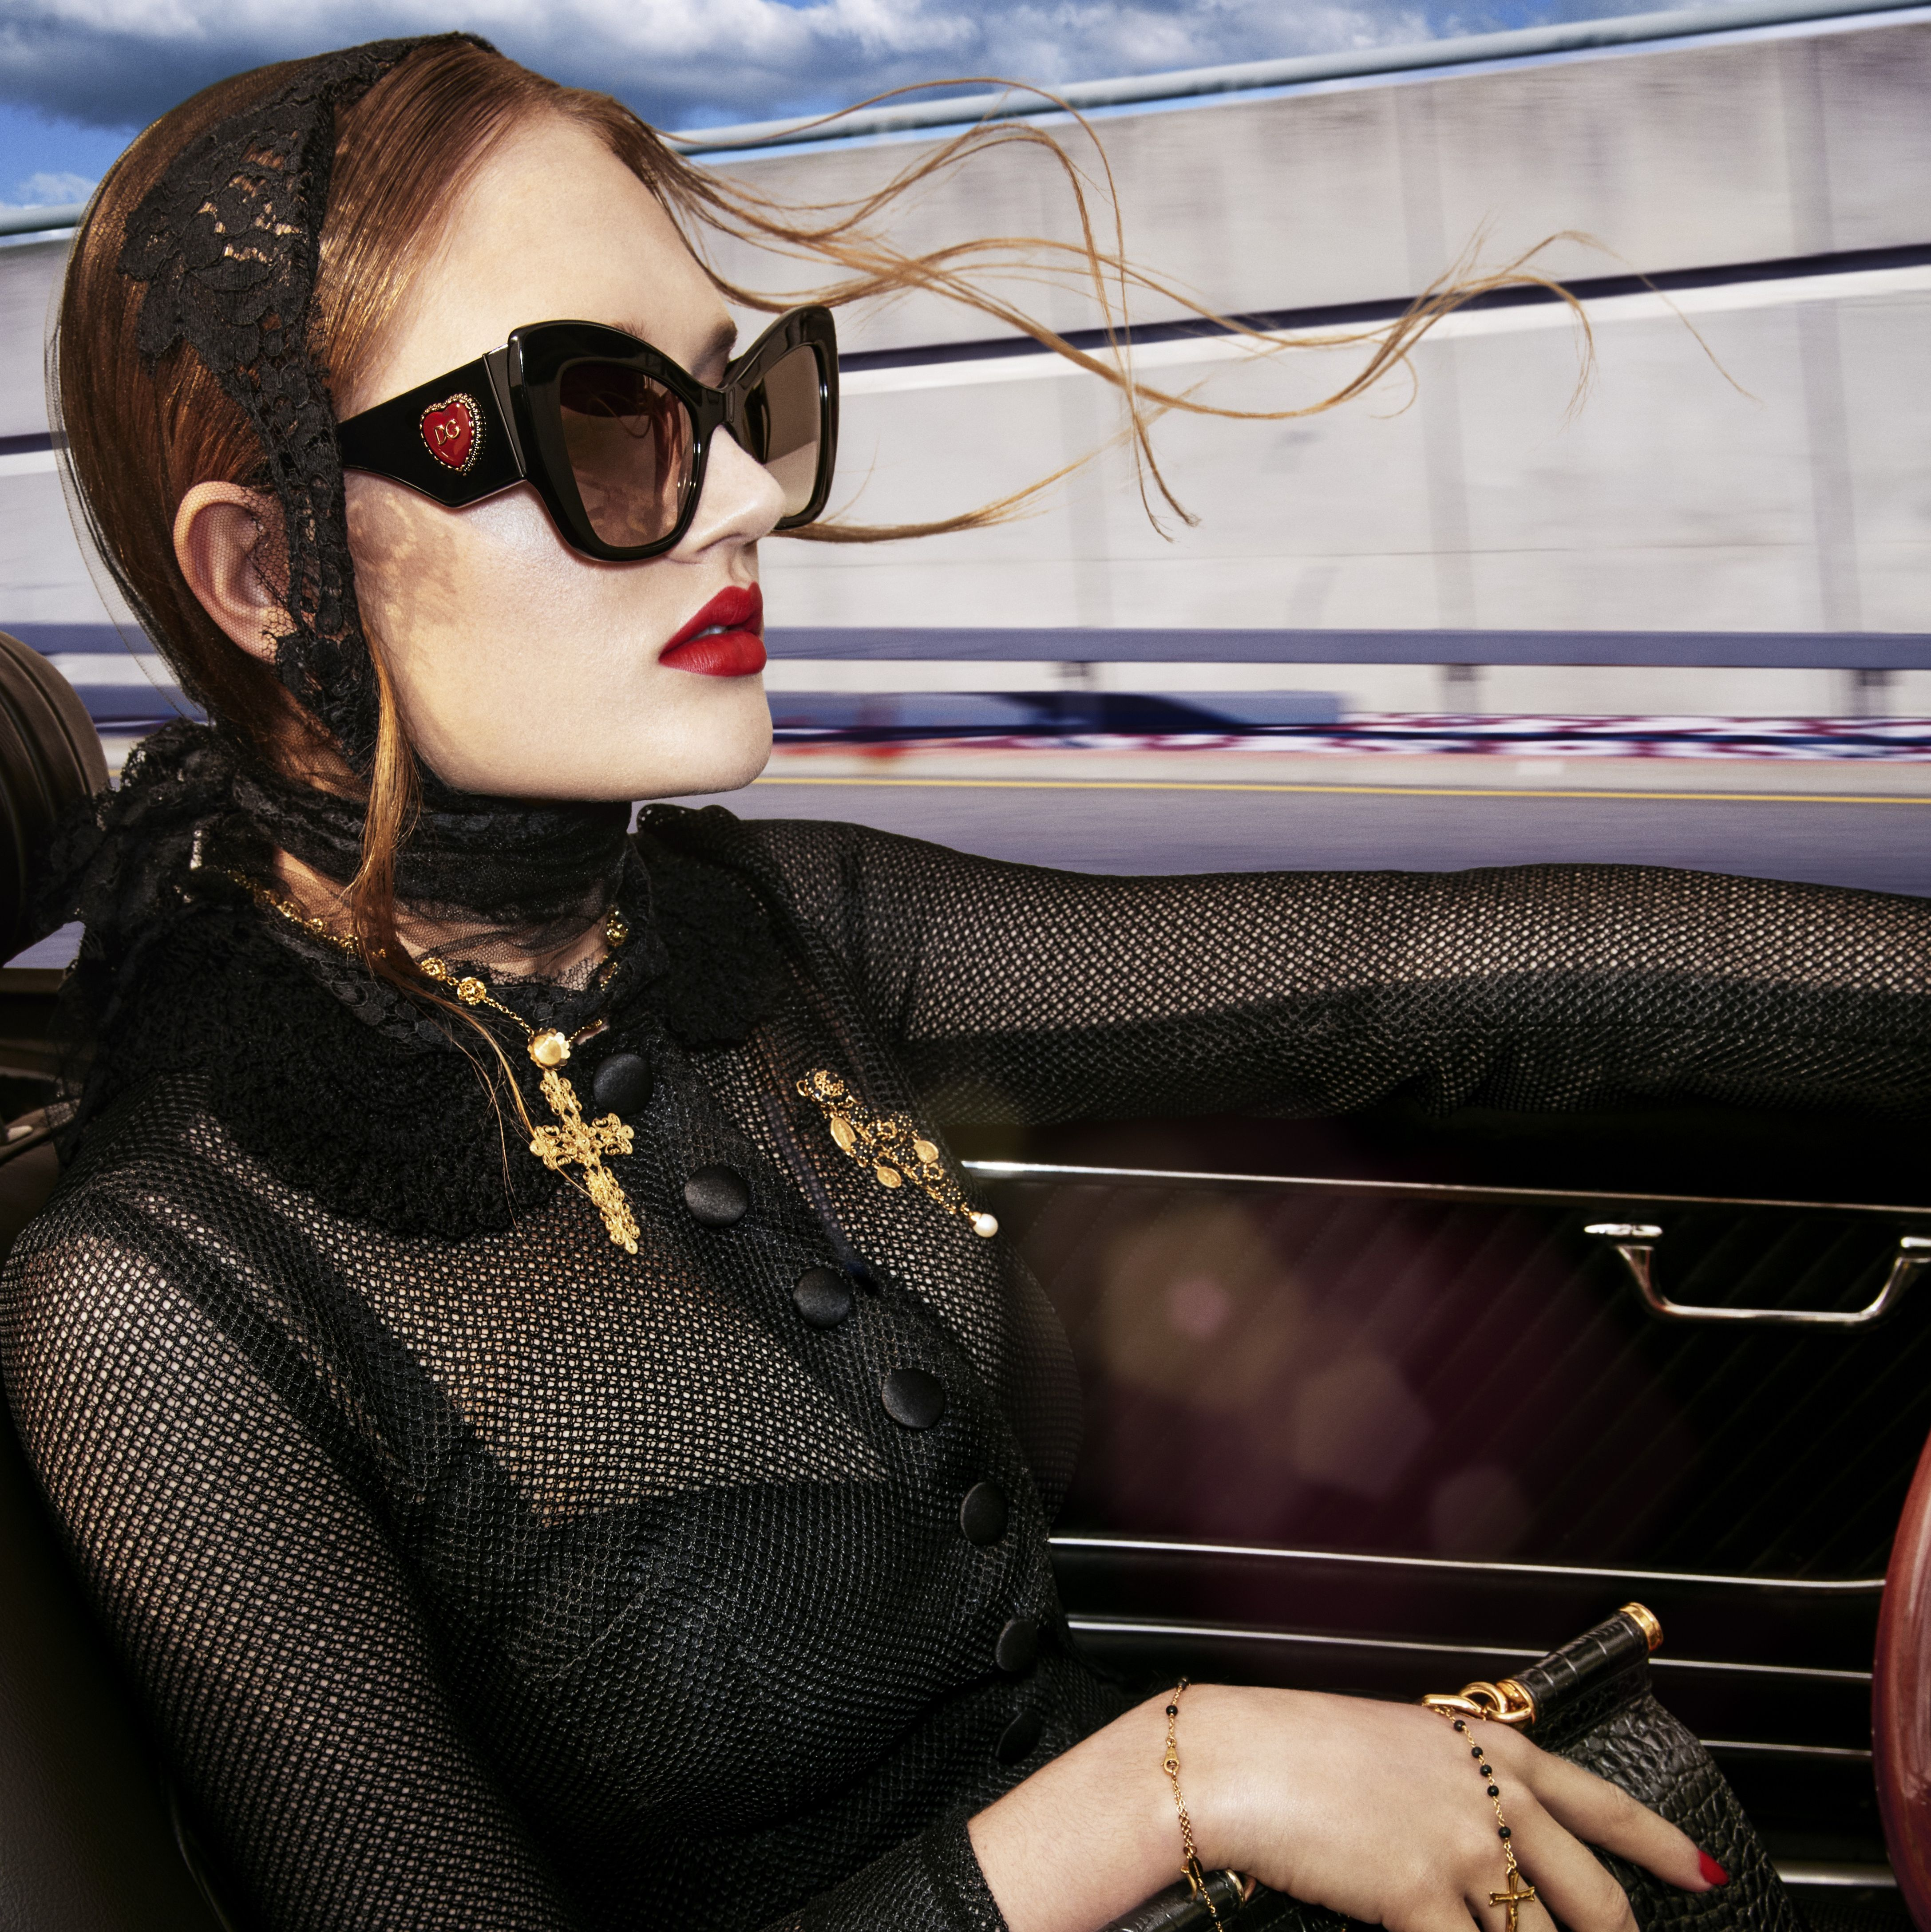 ELLE Editorial: Life in the Fast Lane